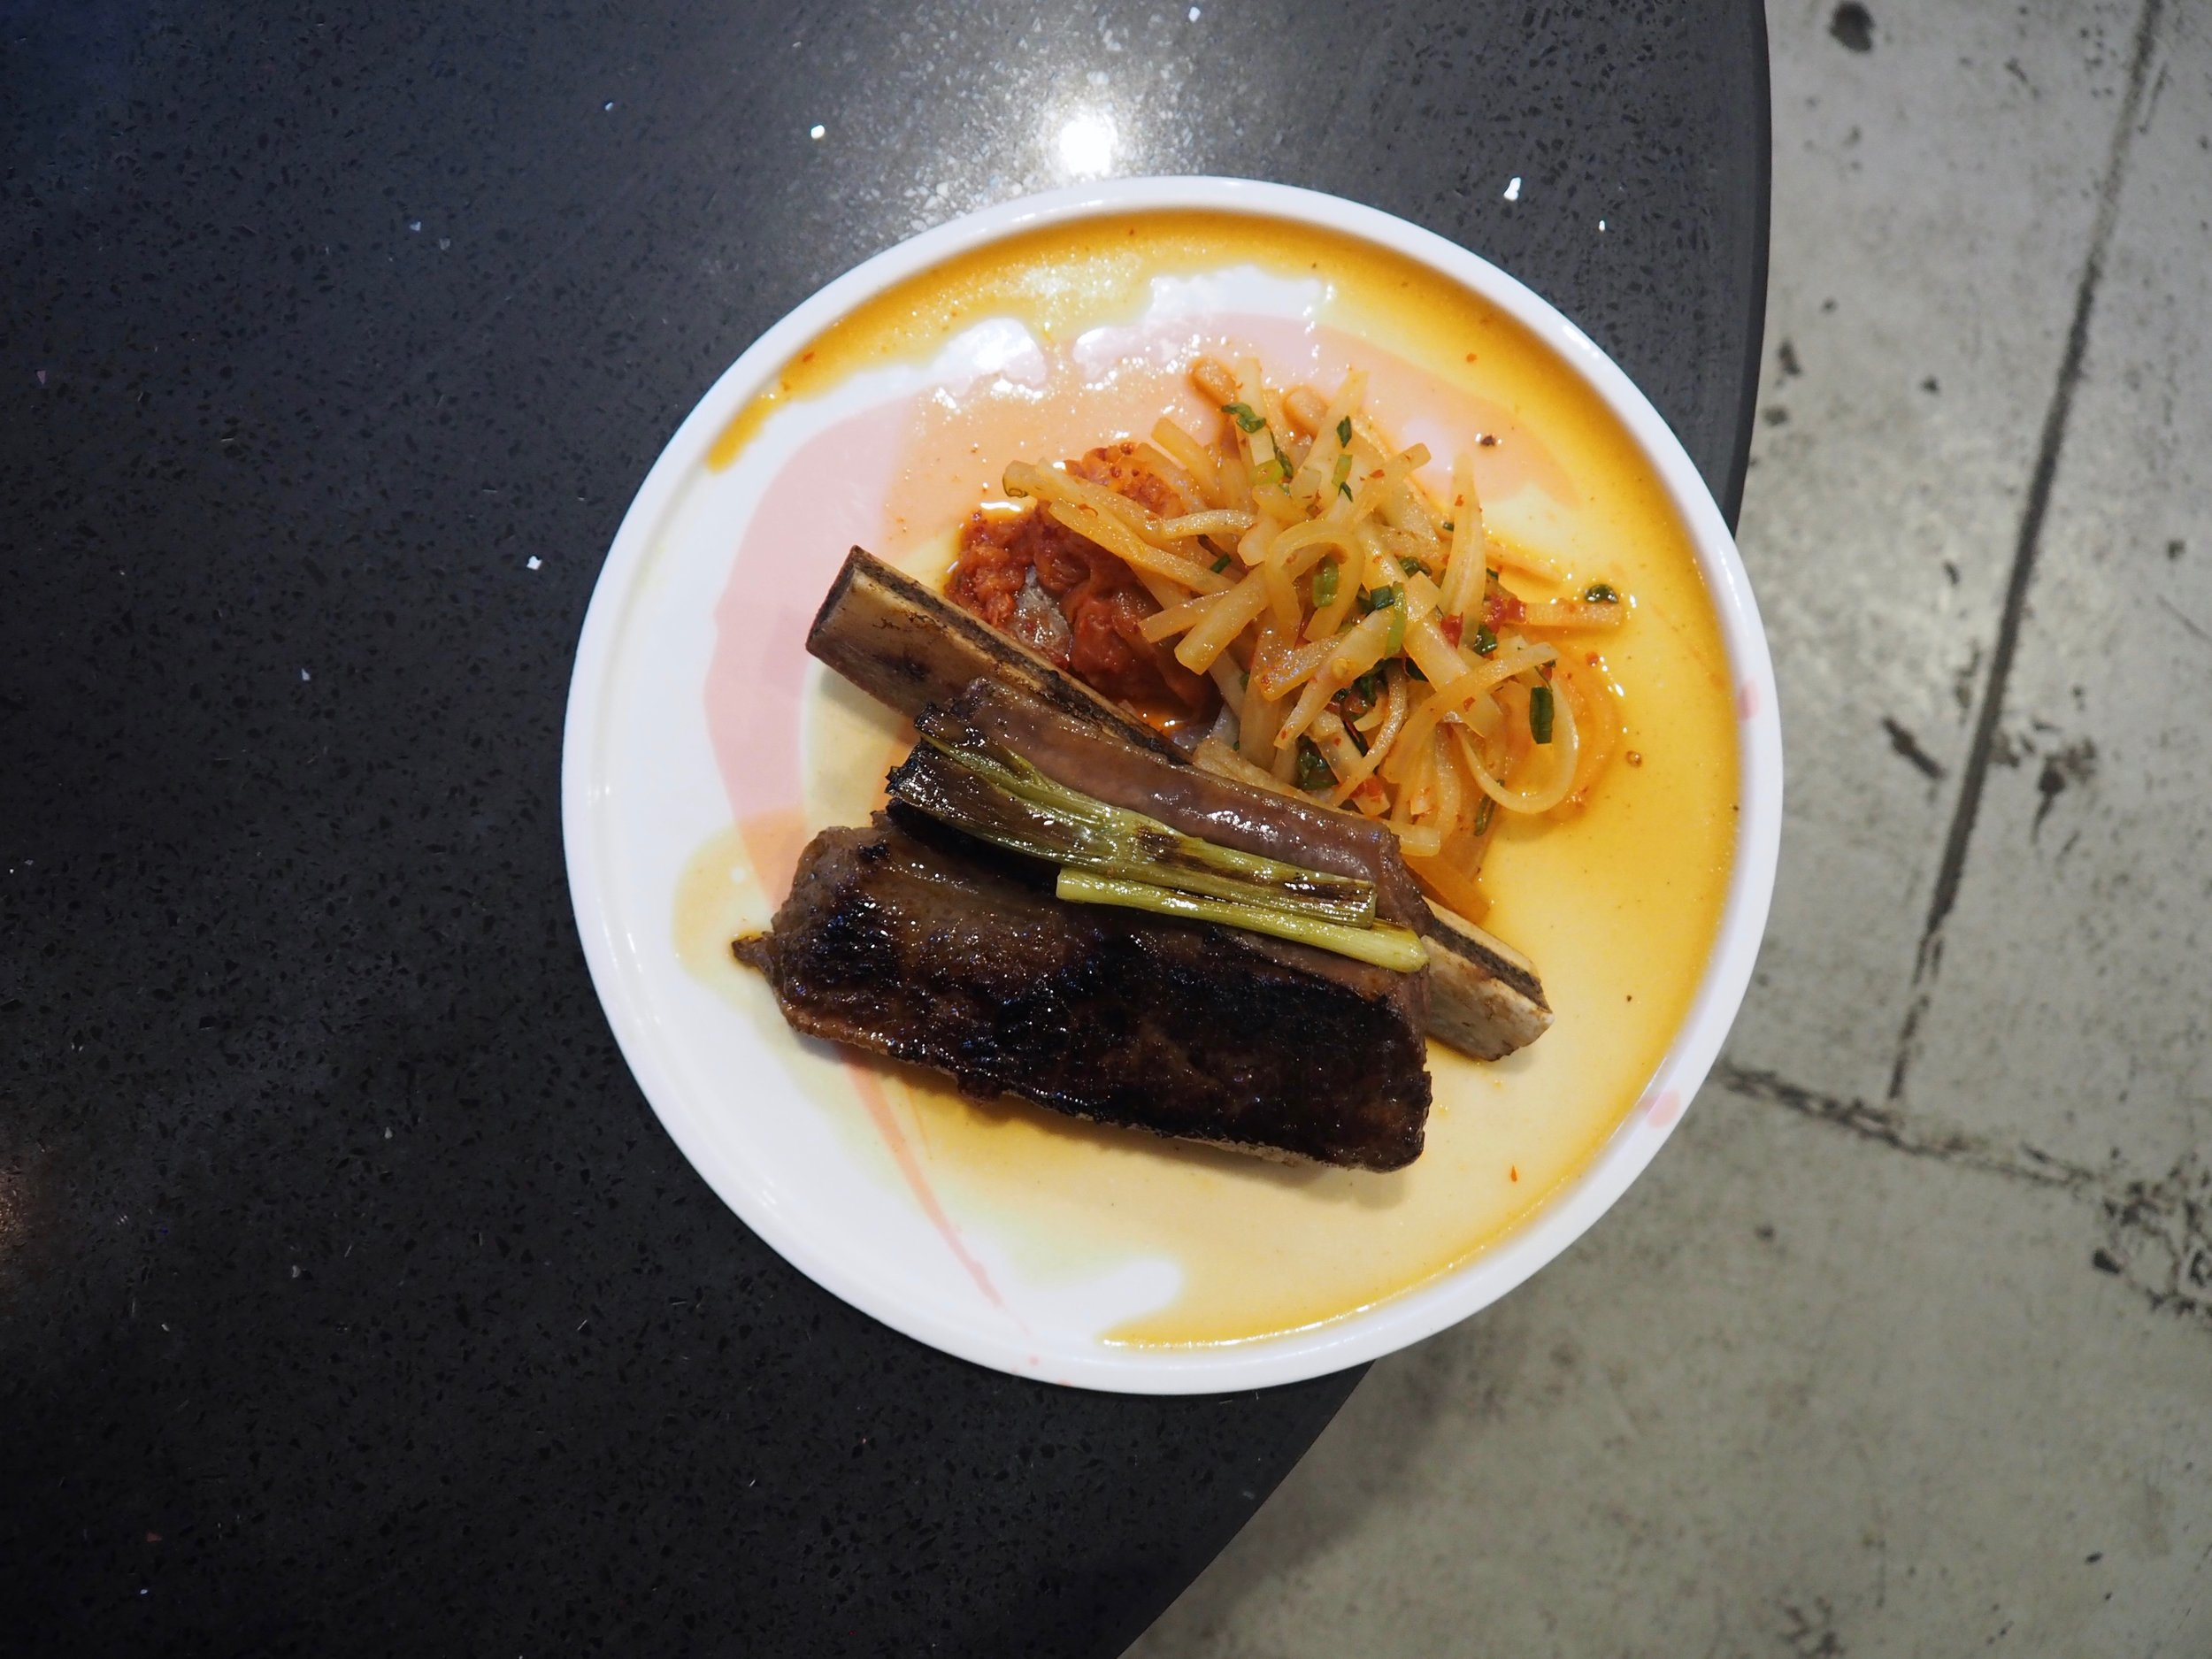 Beef Short Rib - inspired by David Chang (Momofuku Ssam Bar, New York), MasterClass 2010